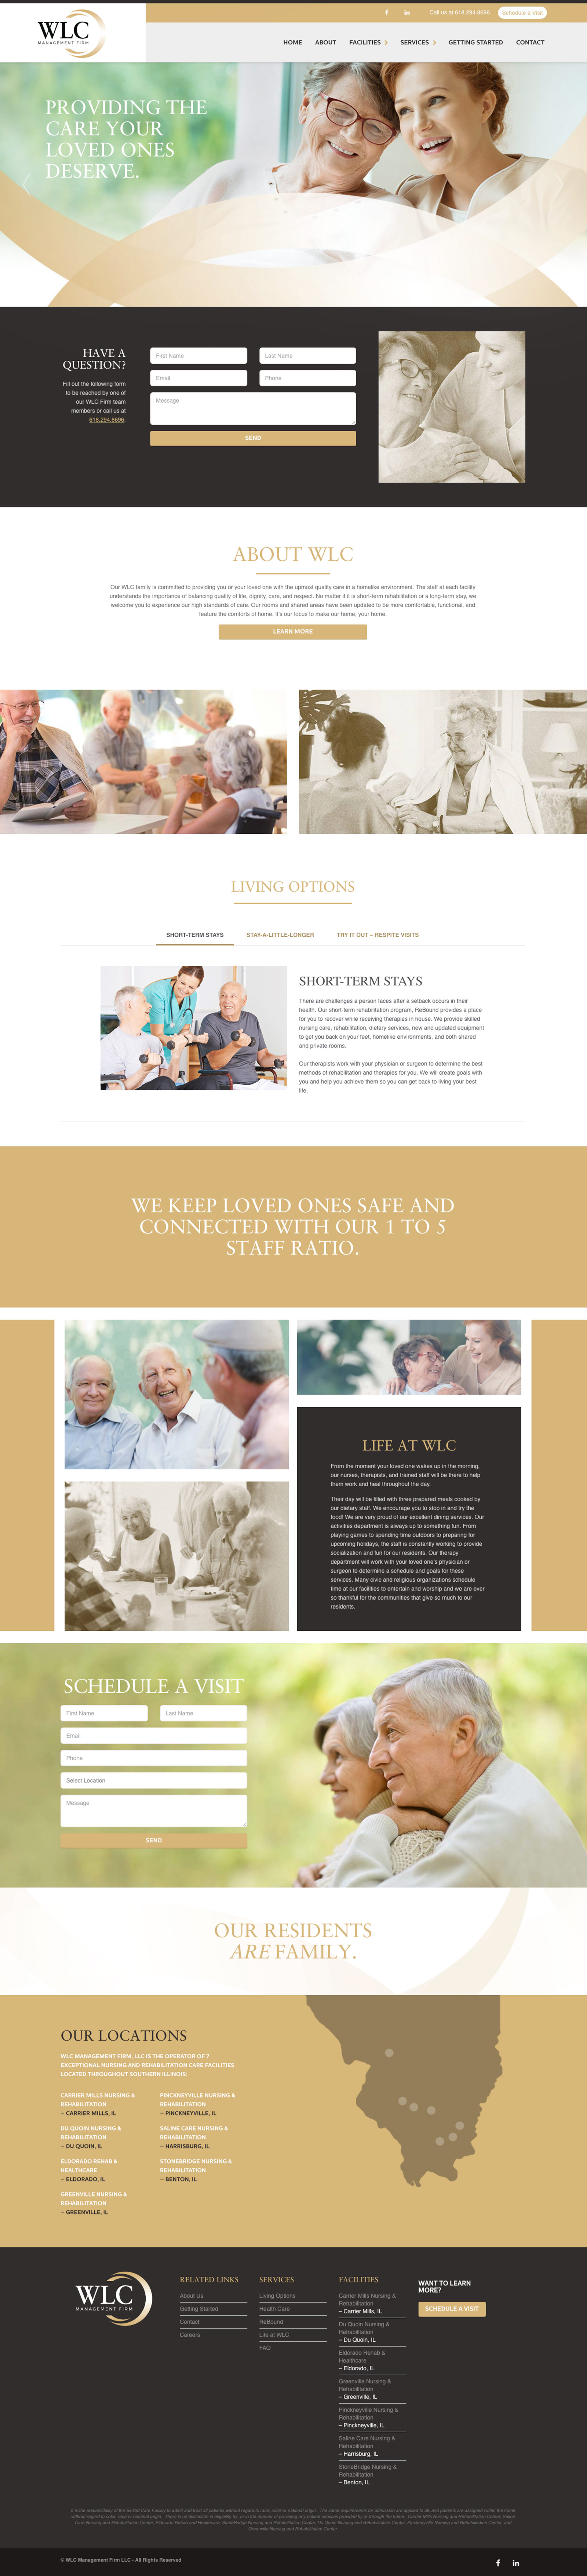 WLC Management Firm Responsive Website Design Scrolling Example